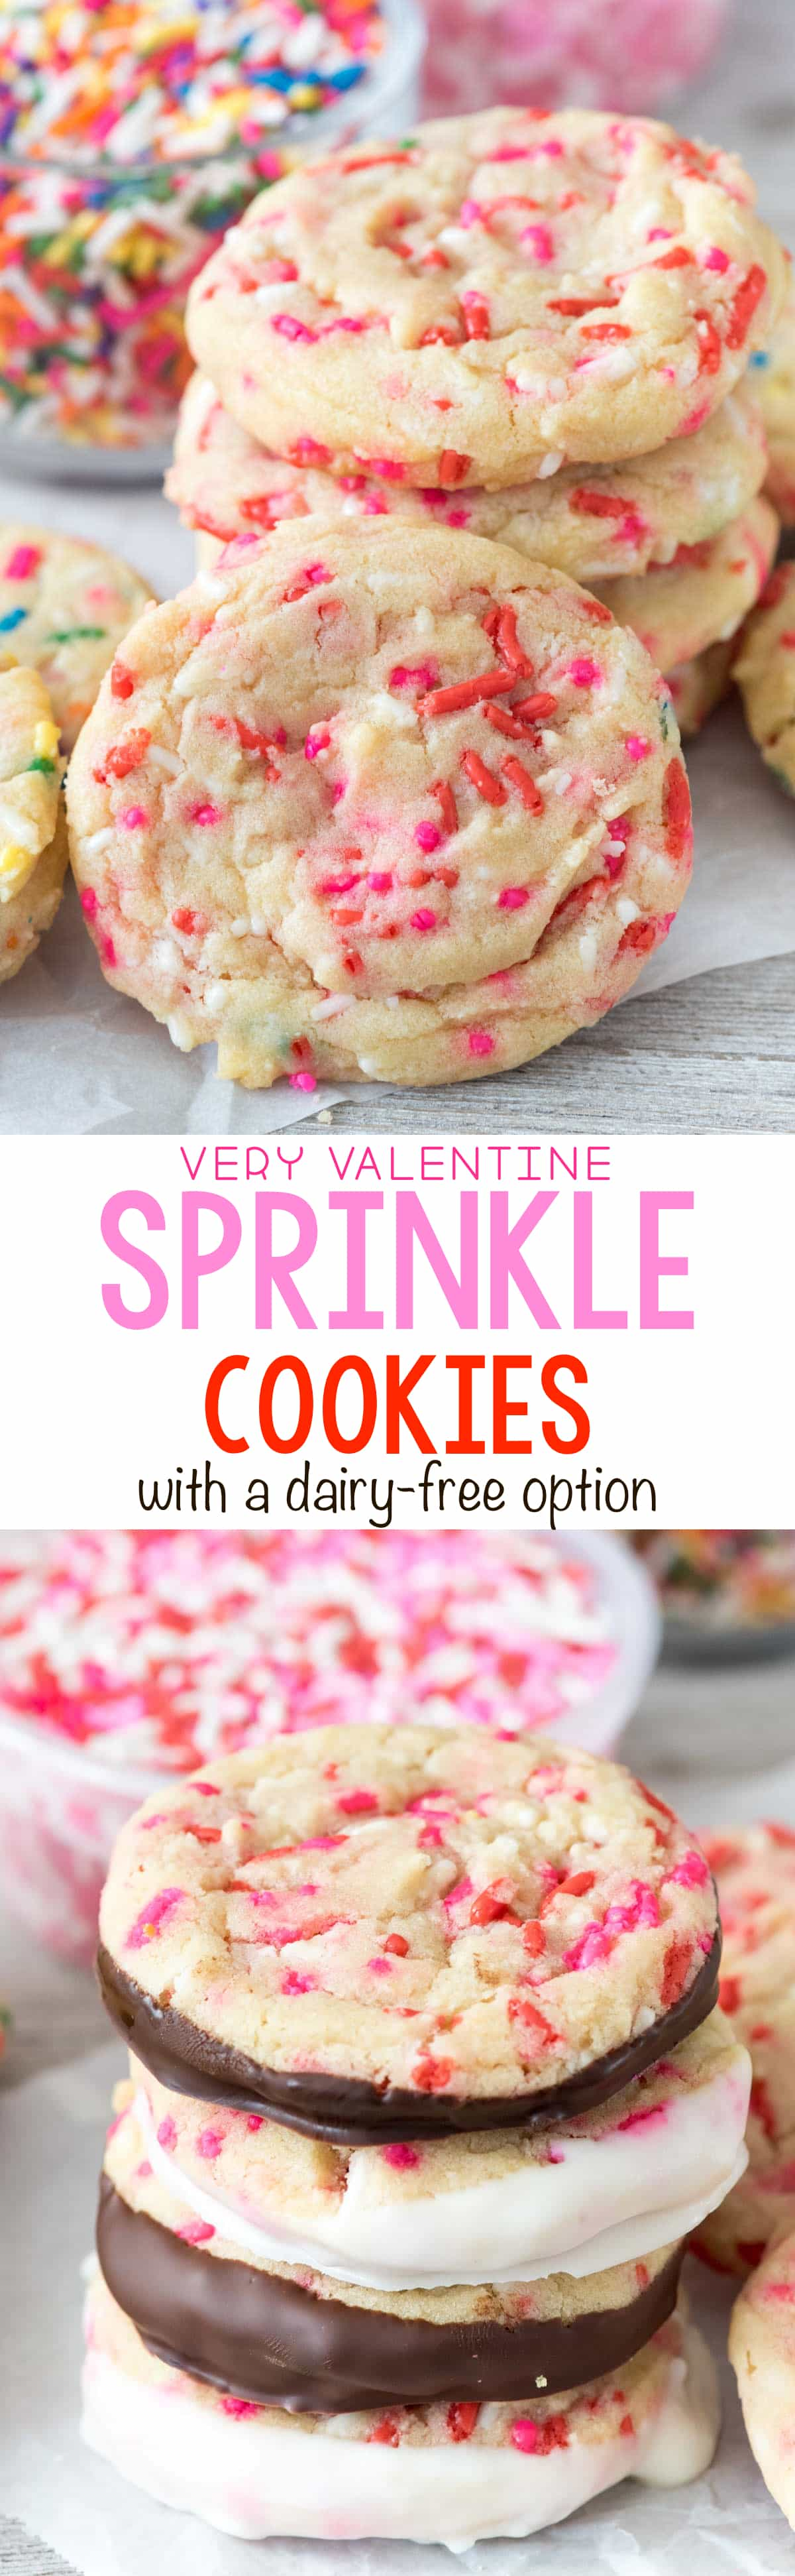 Valentine Sprinkle Cookies - this easy sugar cookie recipe is full of sprinkles and is perfect for Valentine's Day! EVERYONE loves these cookies!